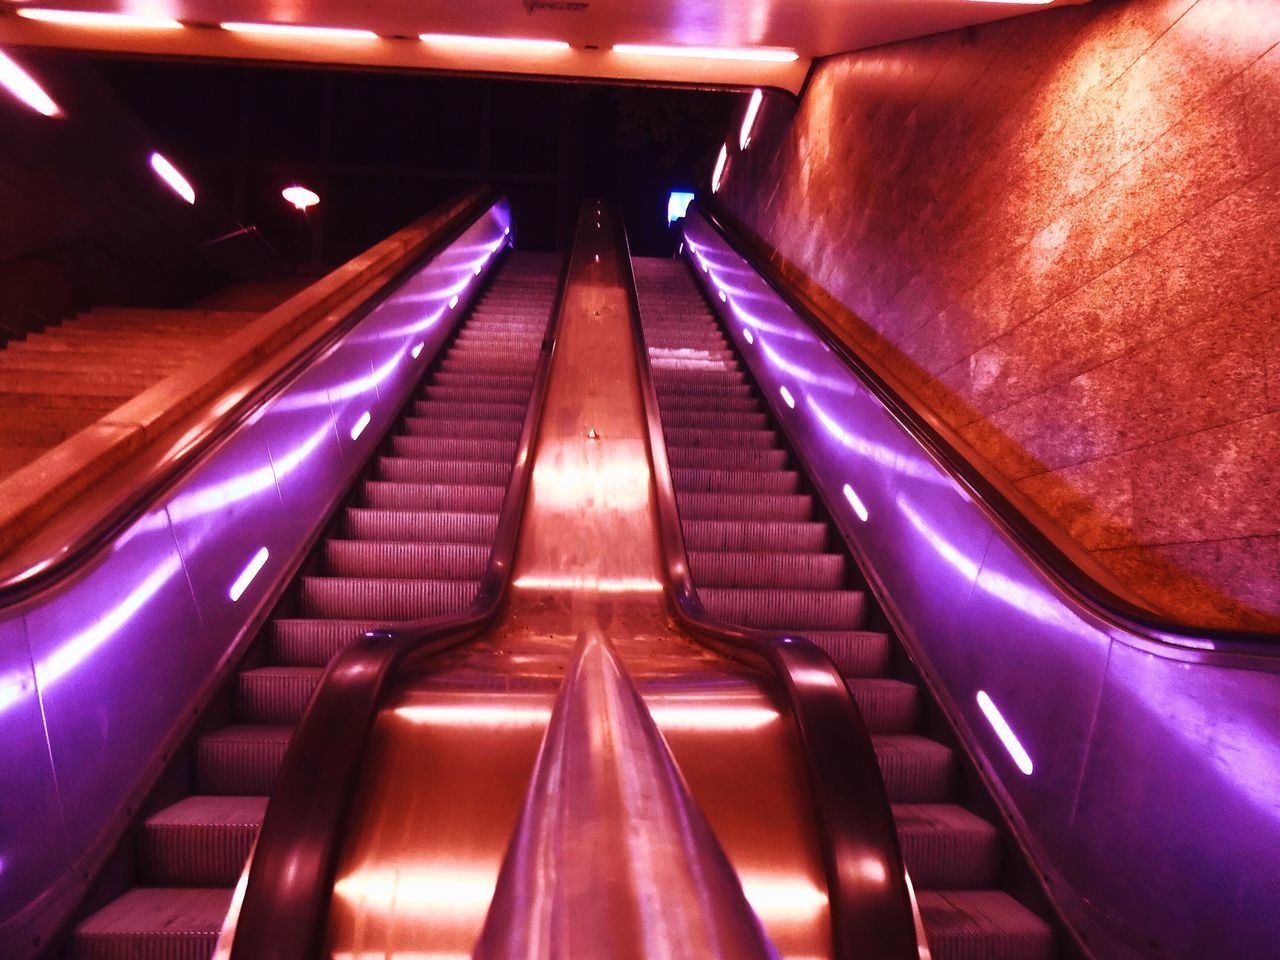 VIEW OF ESCALATOR IN ILLUMINATED UNDERGROUND